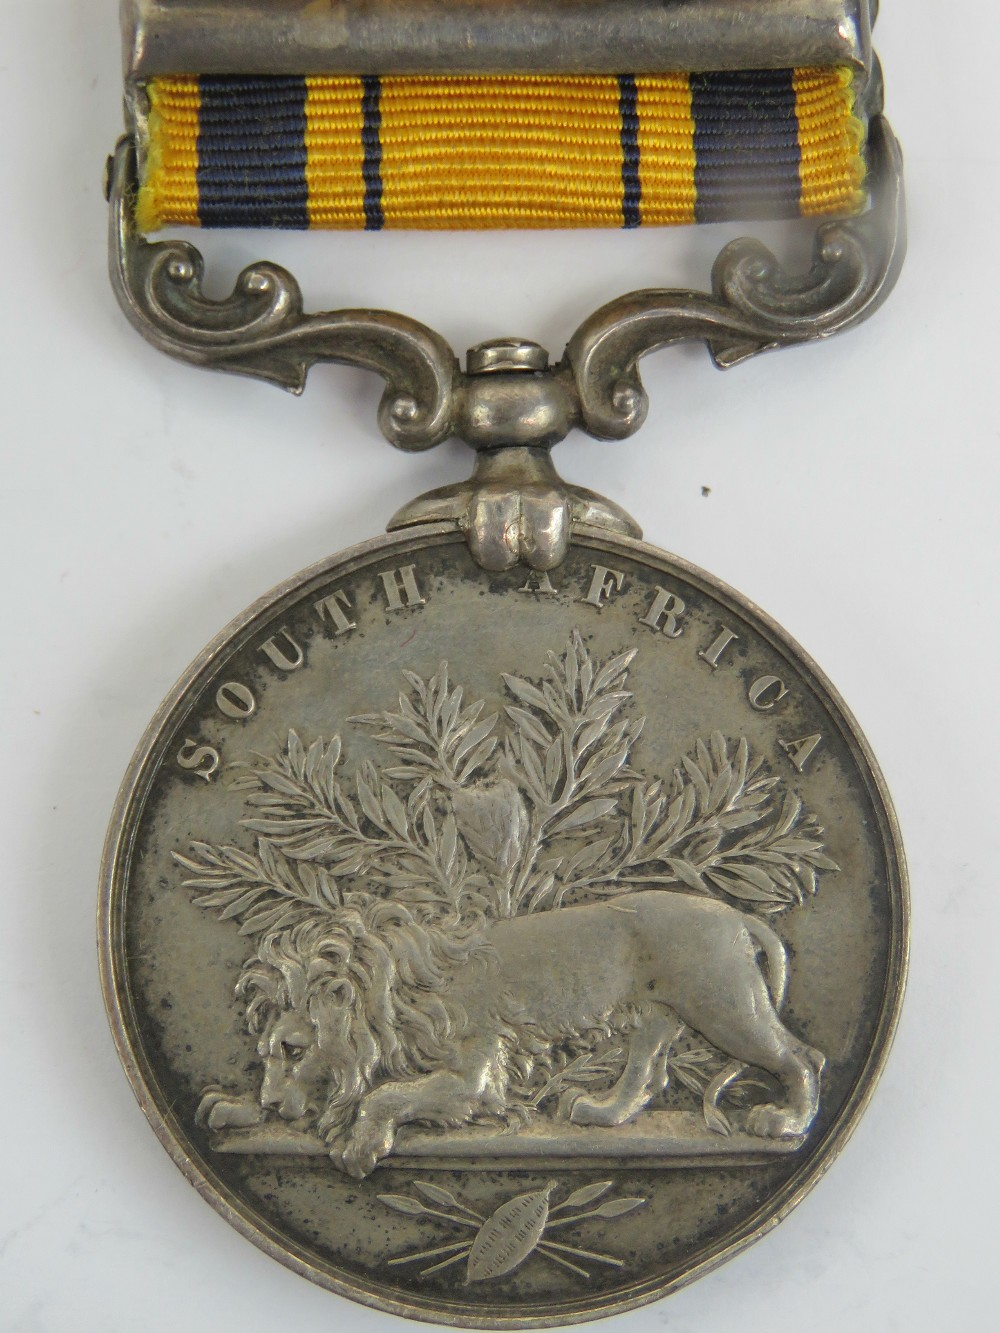 A South African Zulu war medal (1880) with ribbon and bar for 1879, - Image 2 of 5